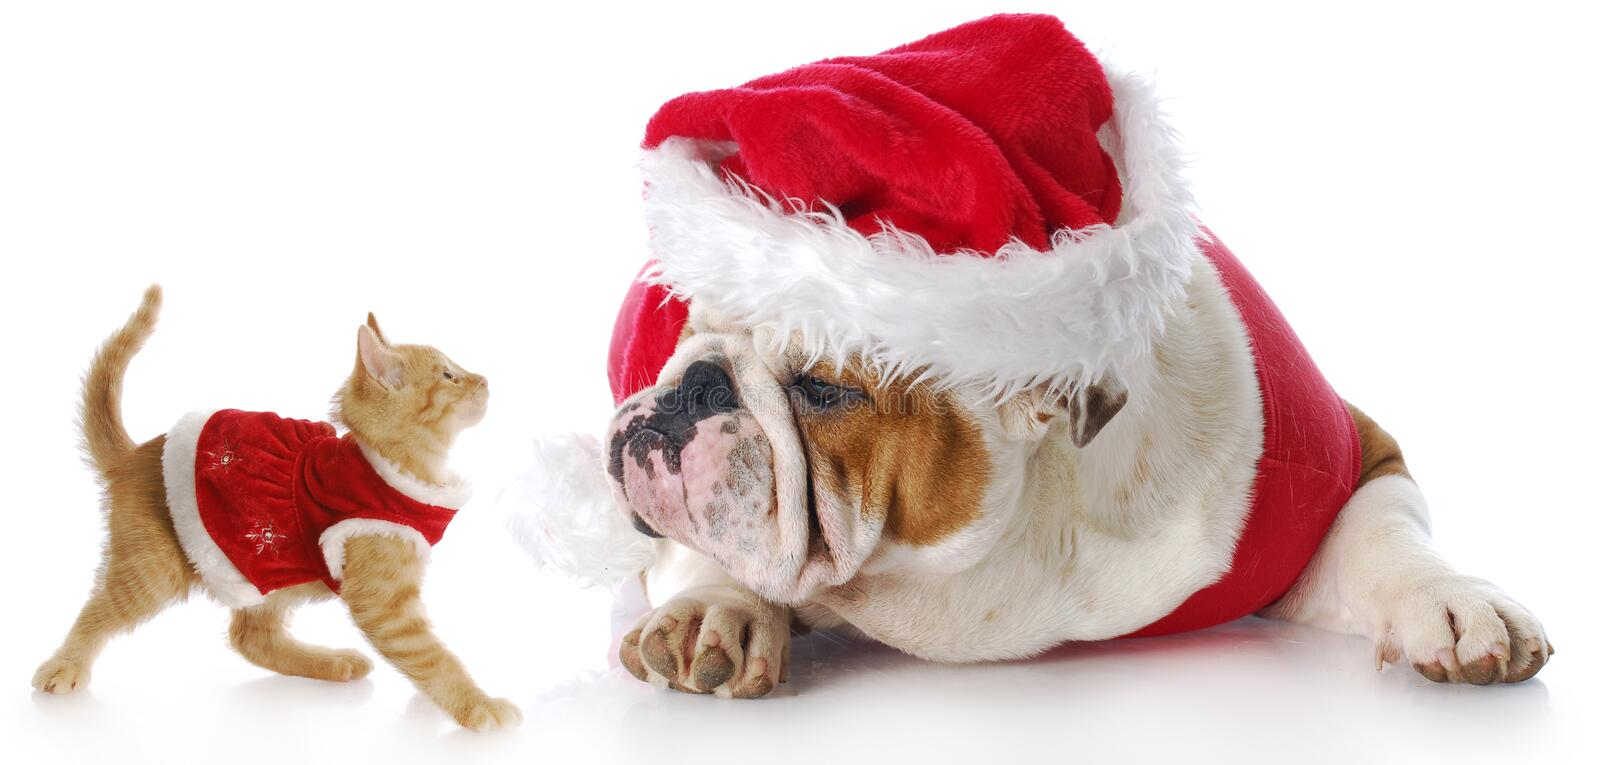 Christmas cat and dog. Adorable cat and dog dressed up for christmas with reflection on white background